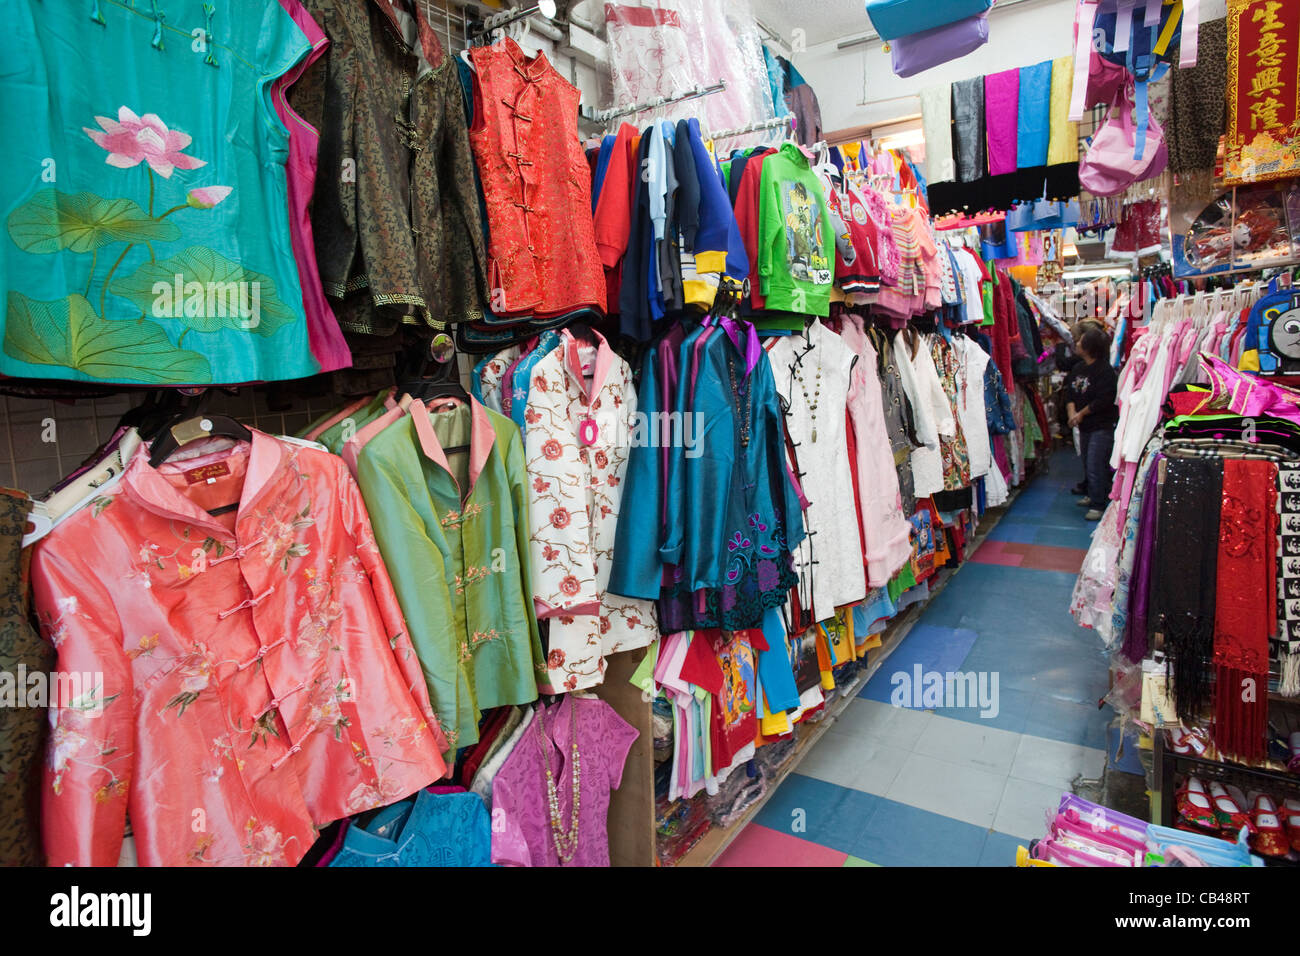 The Clothing Store industry is part of the retail sector in China. Operators in this industry retail clothing for men, women, and children, as well as clothing accessories such as scarves, socks, belts and ties.